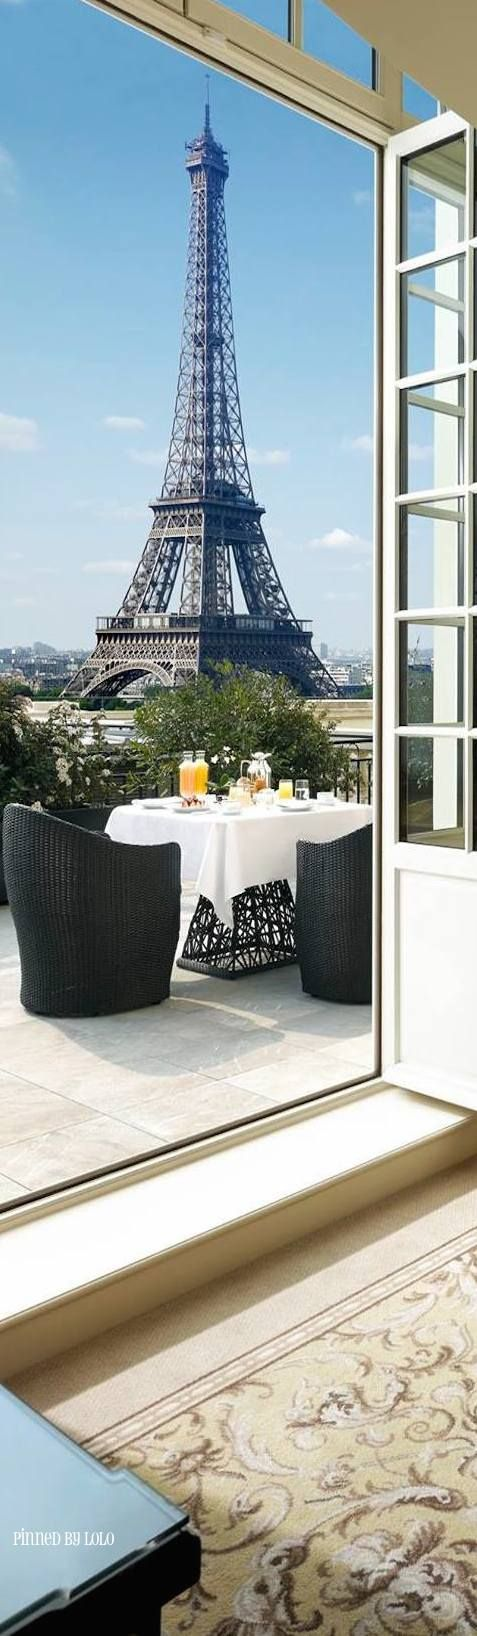 Shangri-La Hotel...Paris - what better hotel to choose than the one with a beautiful Eiffel tower view!: